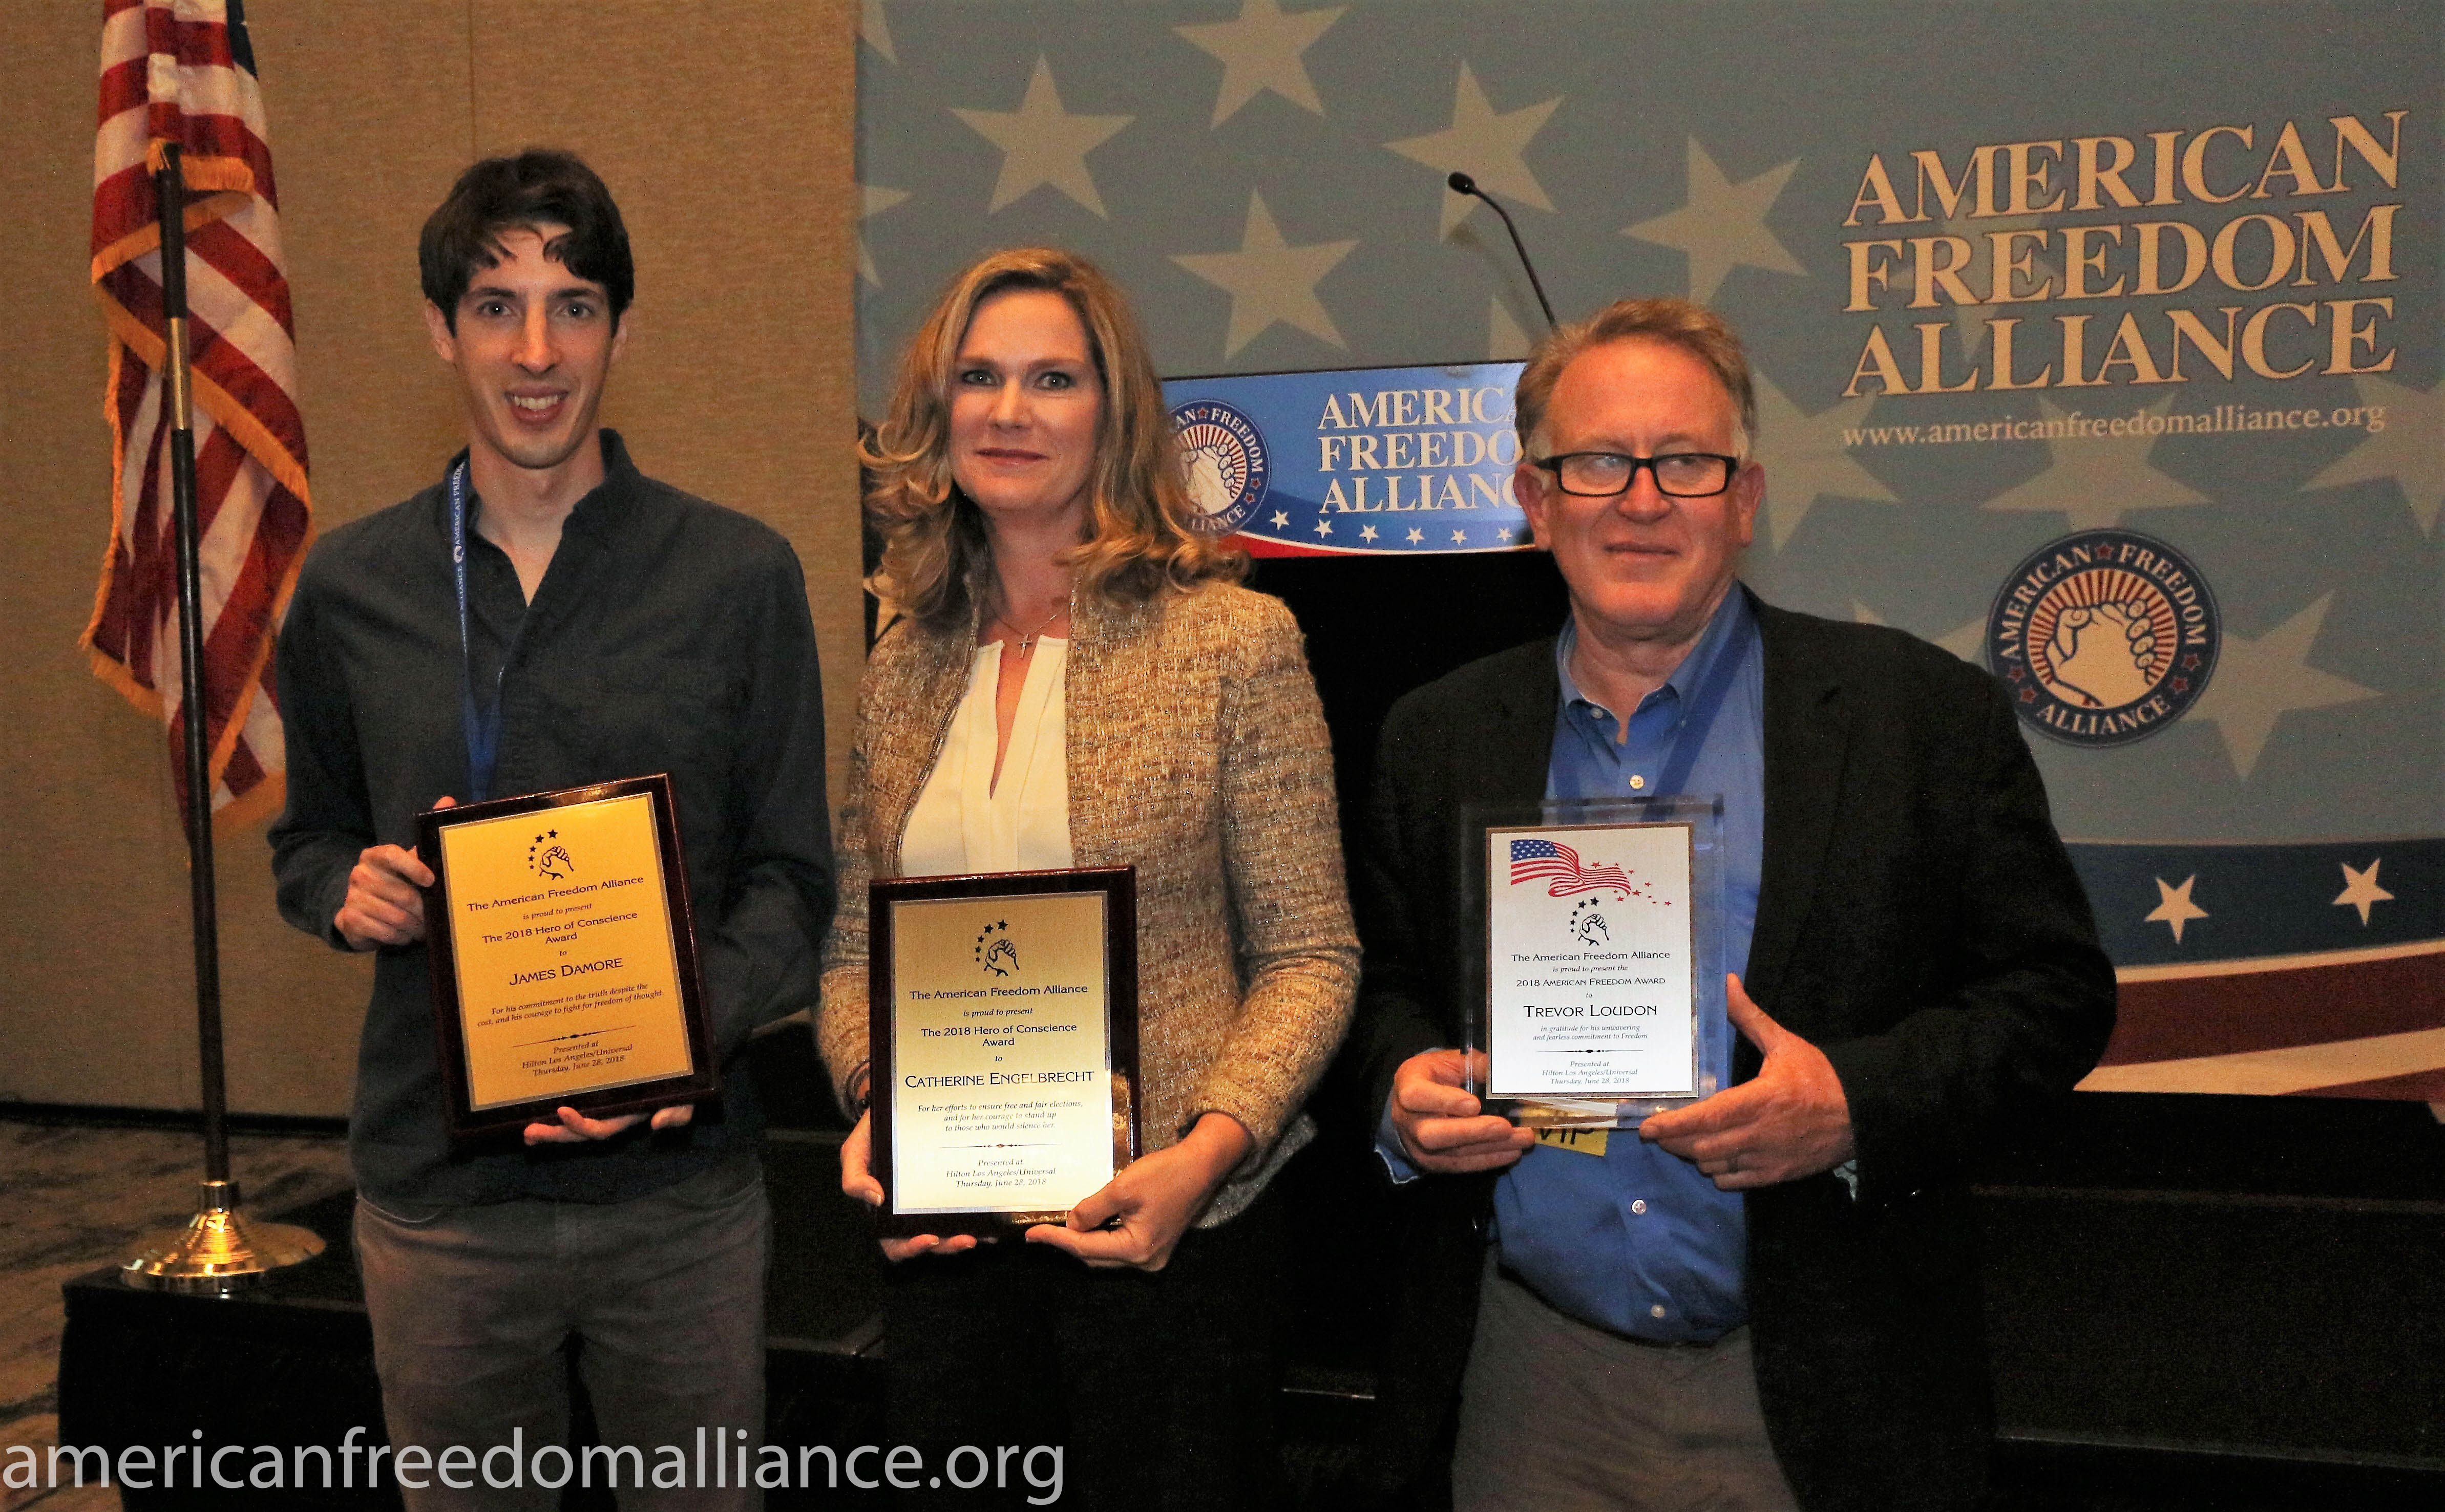 Awardees James Damore, Catherine engelbrecht, Trevor Loudon